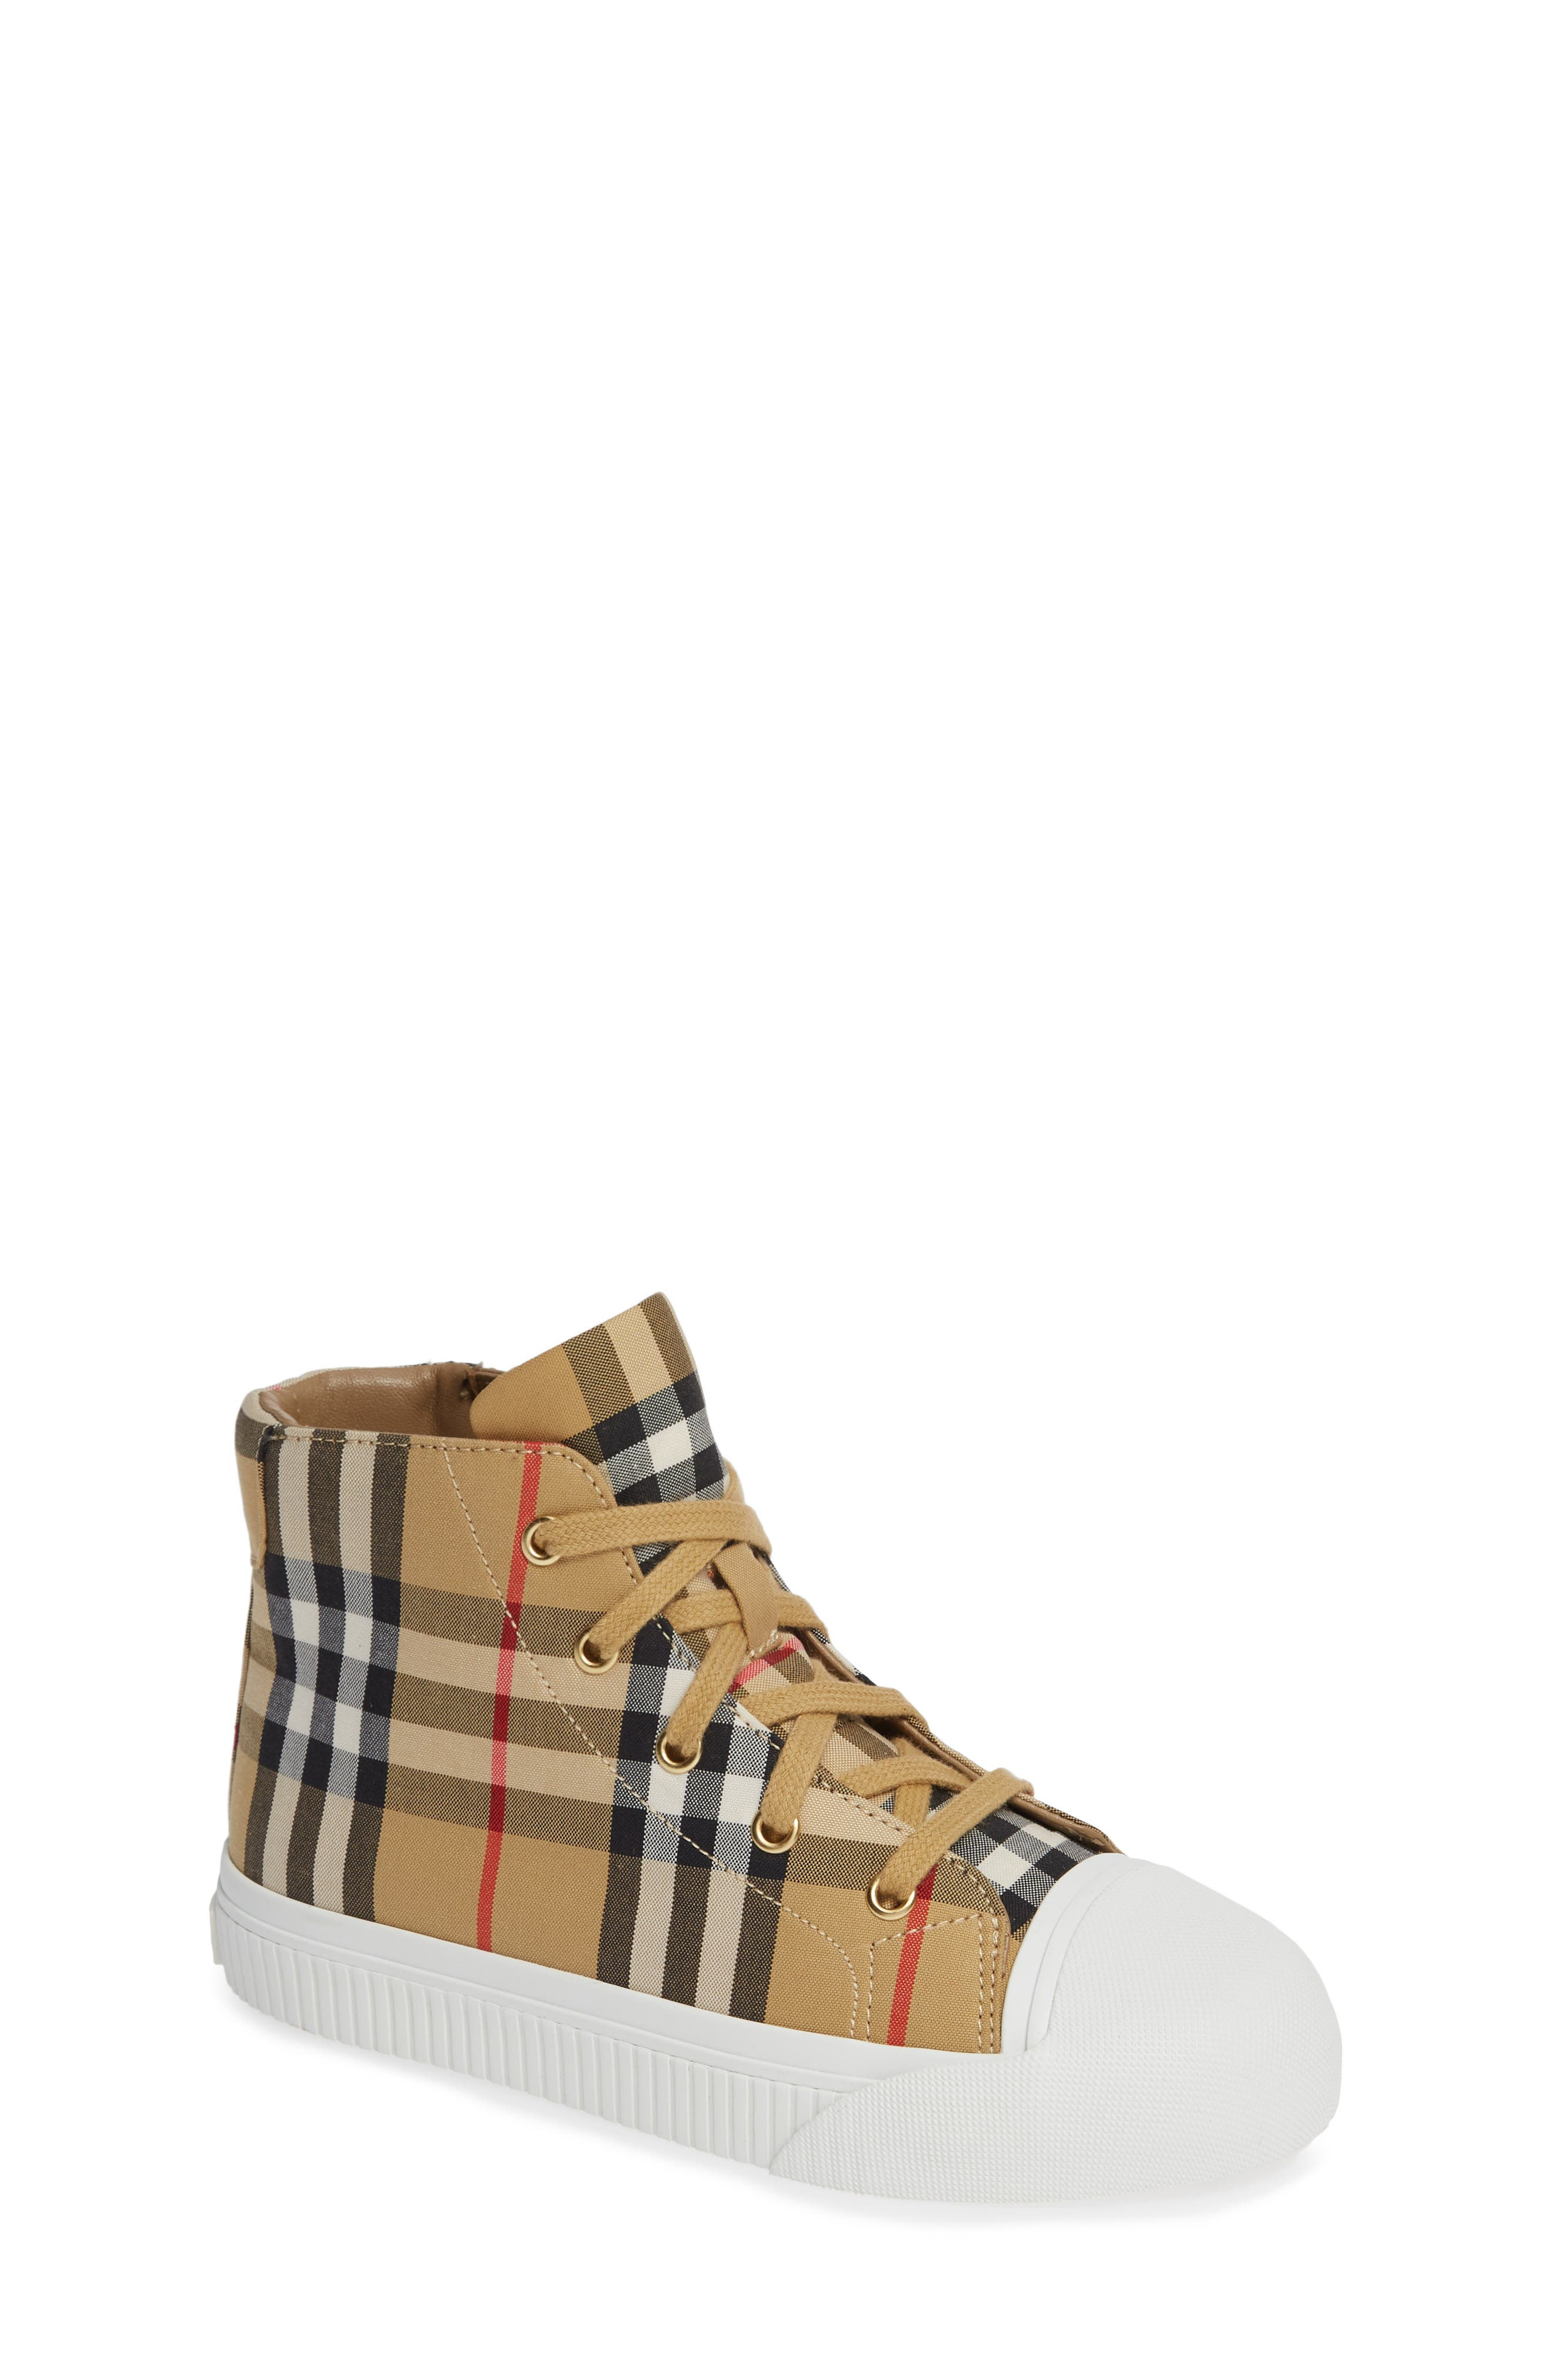 Belford High-Top Sneaker,                         Main,                         color, ANTIQUE YELLOW/ OPTIC WHITE